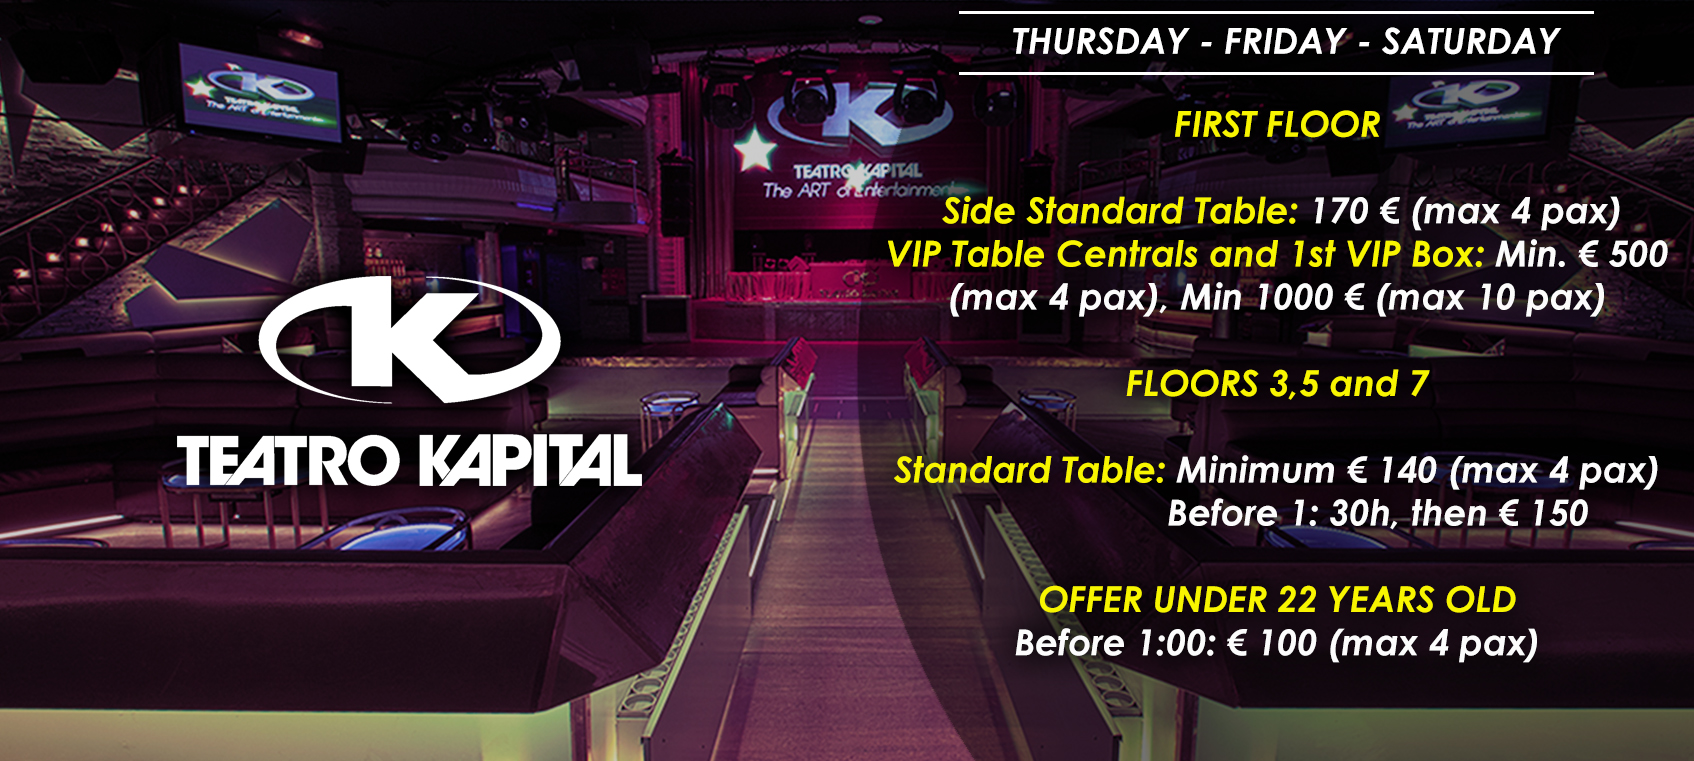 prices tables vip nightclub theater kapital